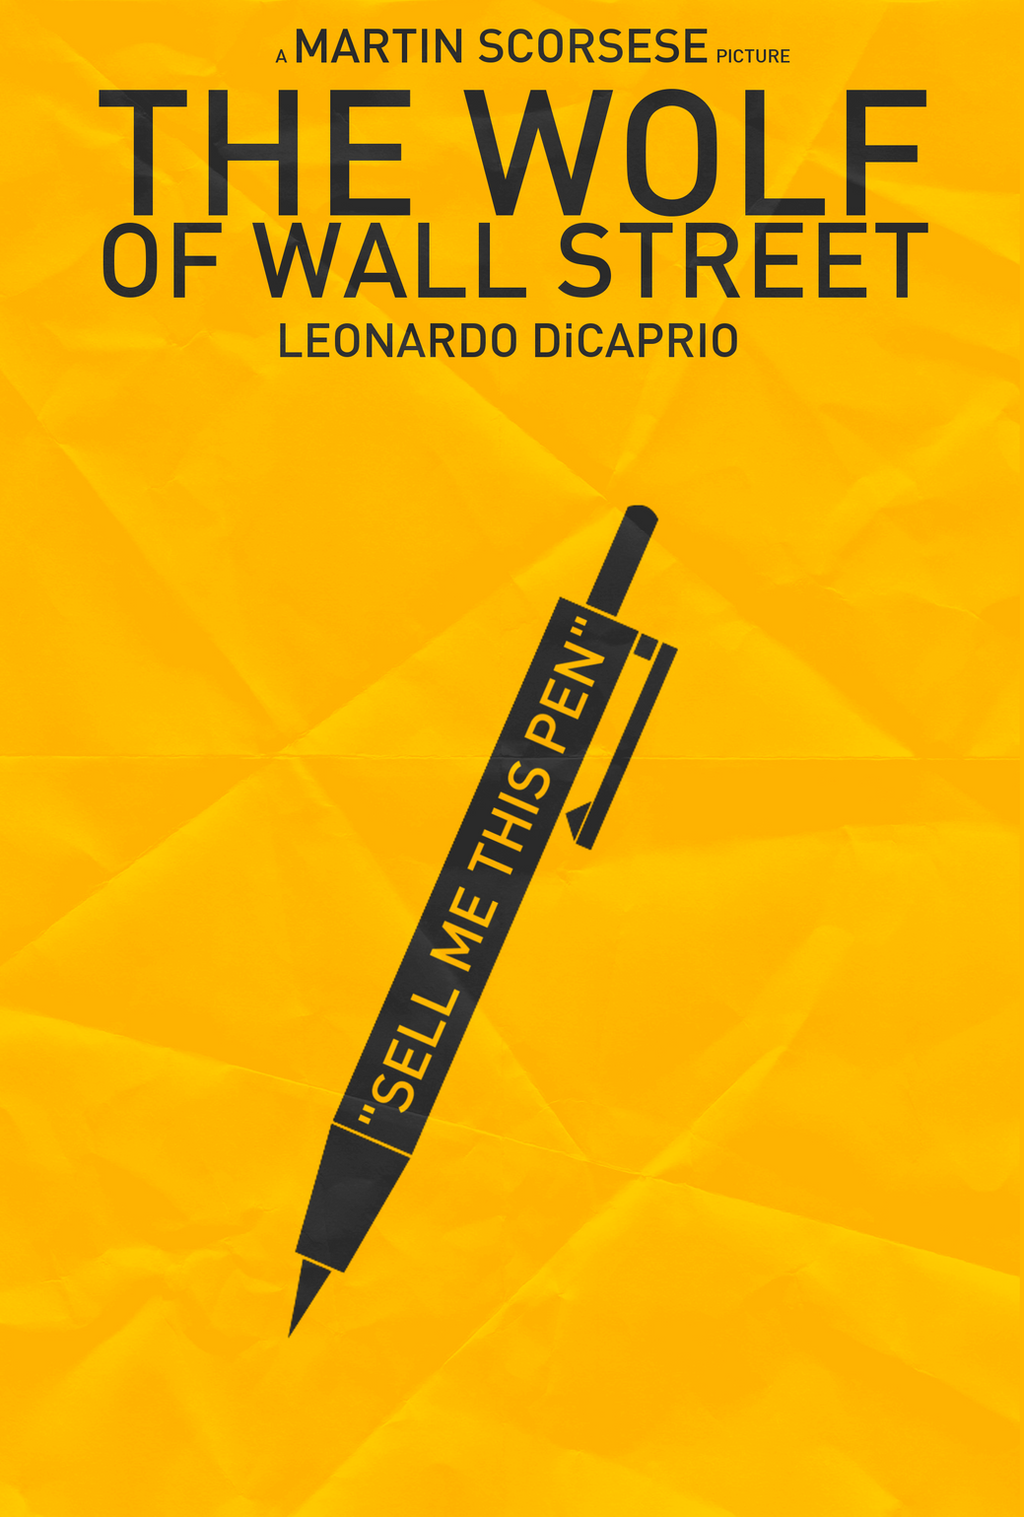 The Wolf of Wall Street - Pen by shrimpy99 on DeviantArt